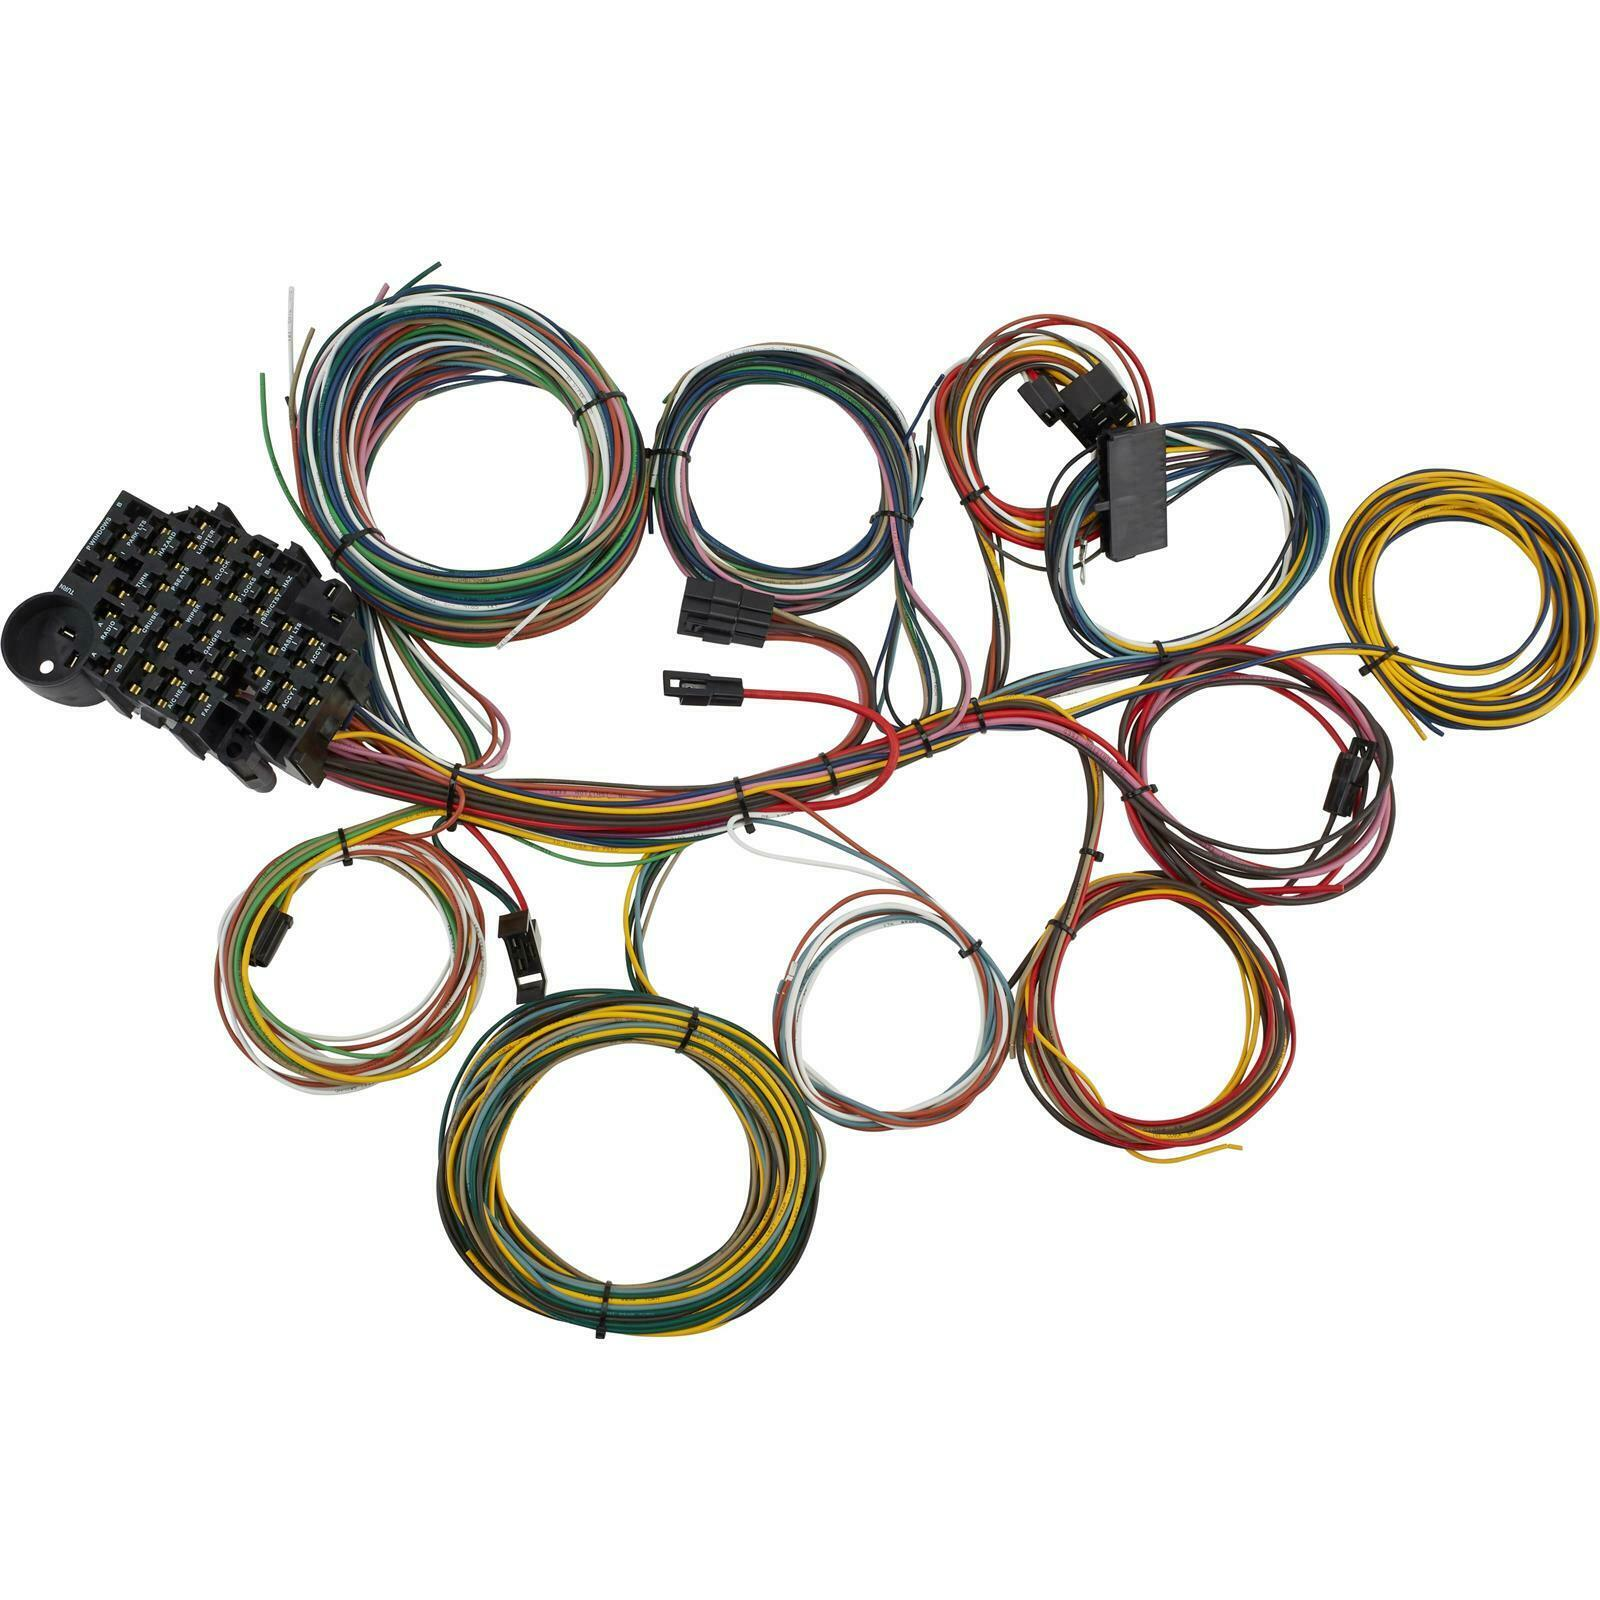 Speedway 22 Circuit Universal Street Rod Wiring Harness w/ Detailed  Instructions 1 of 6Only 5 available See More